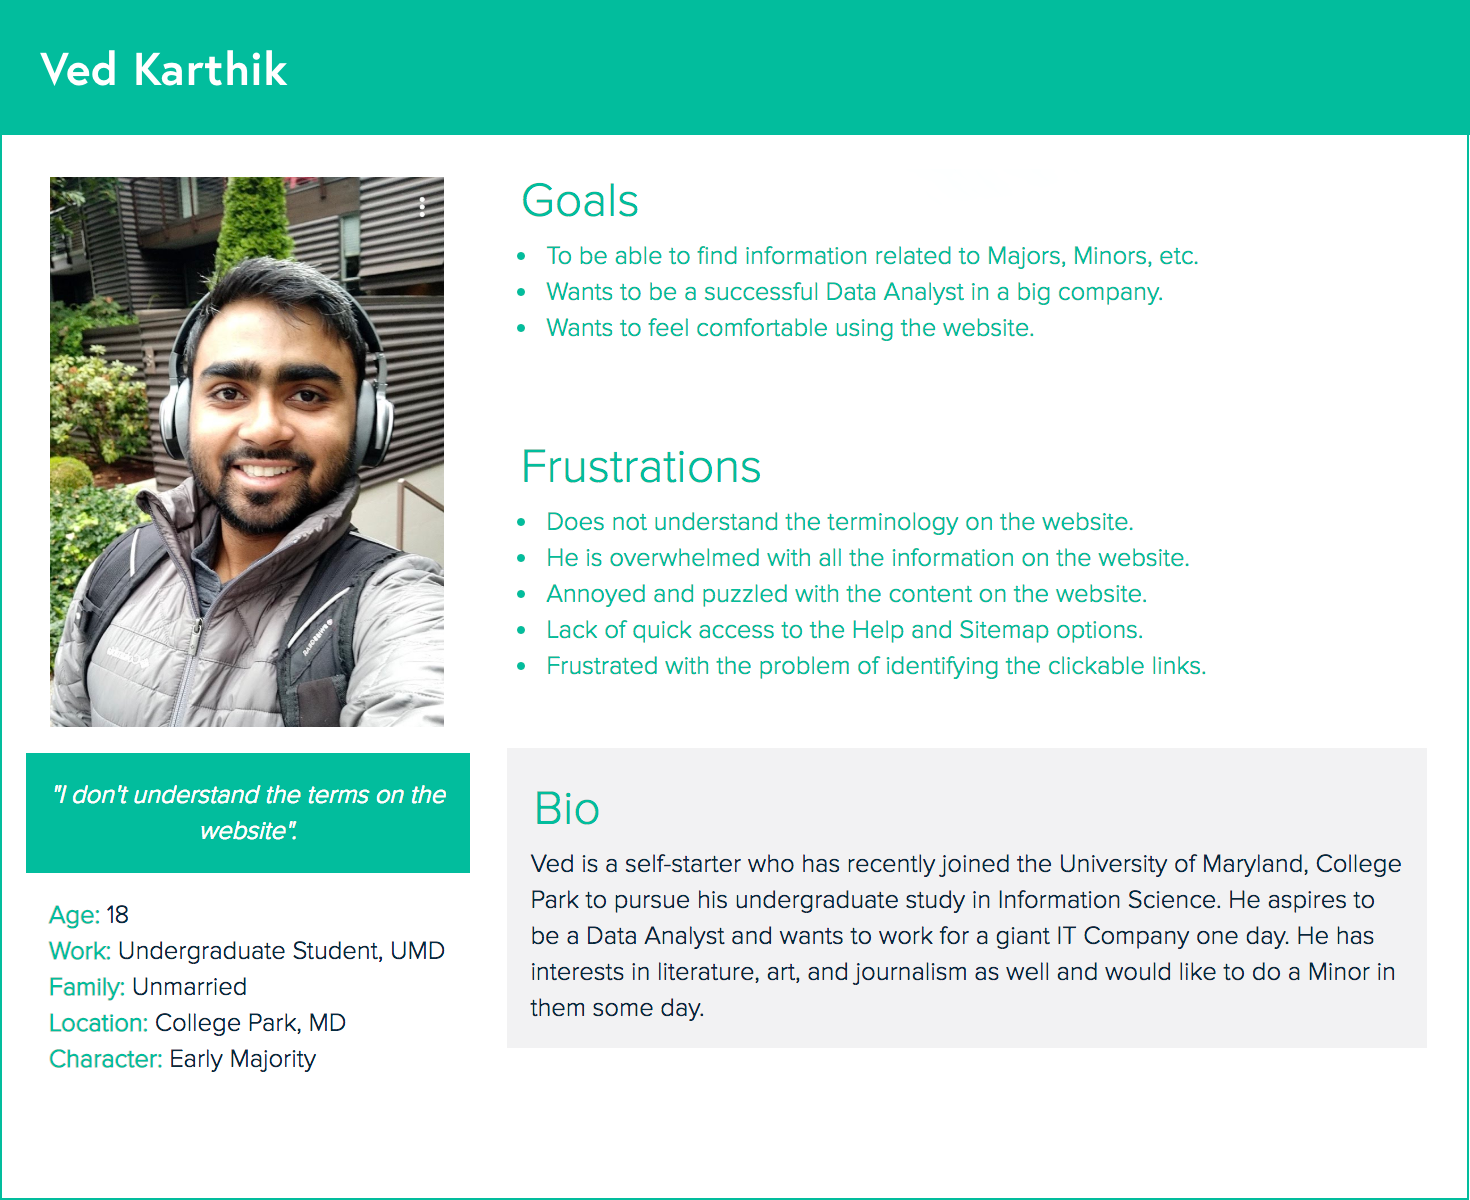 """I don't understand the terms on the website."" - -Ved Karthik"